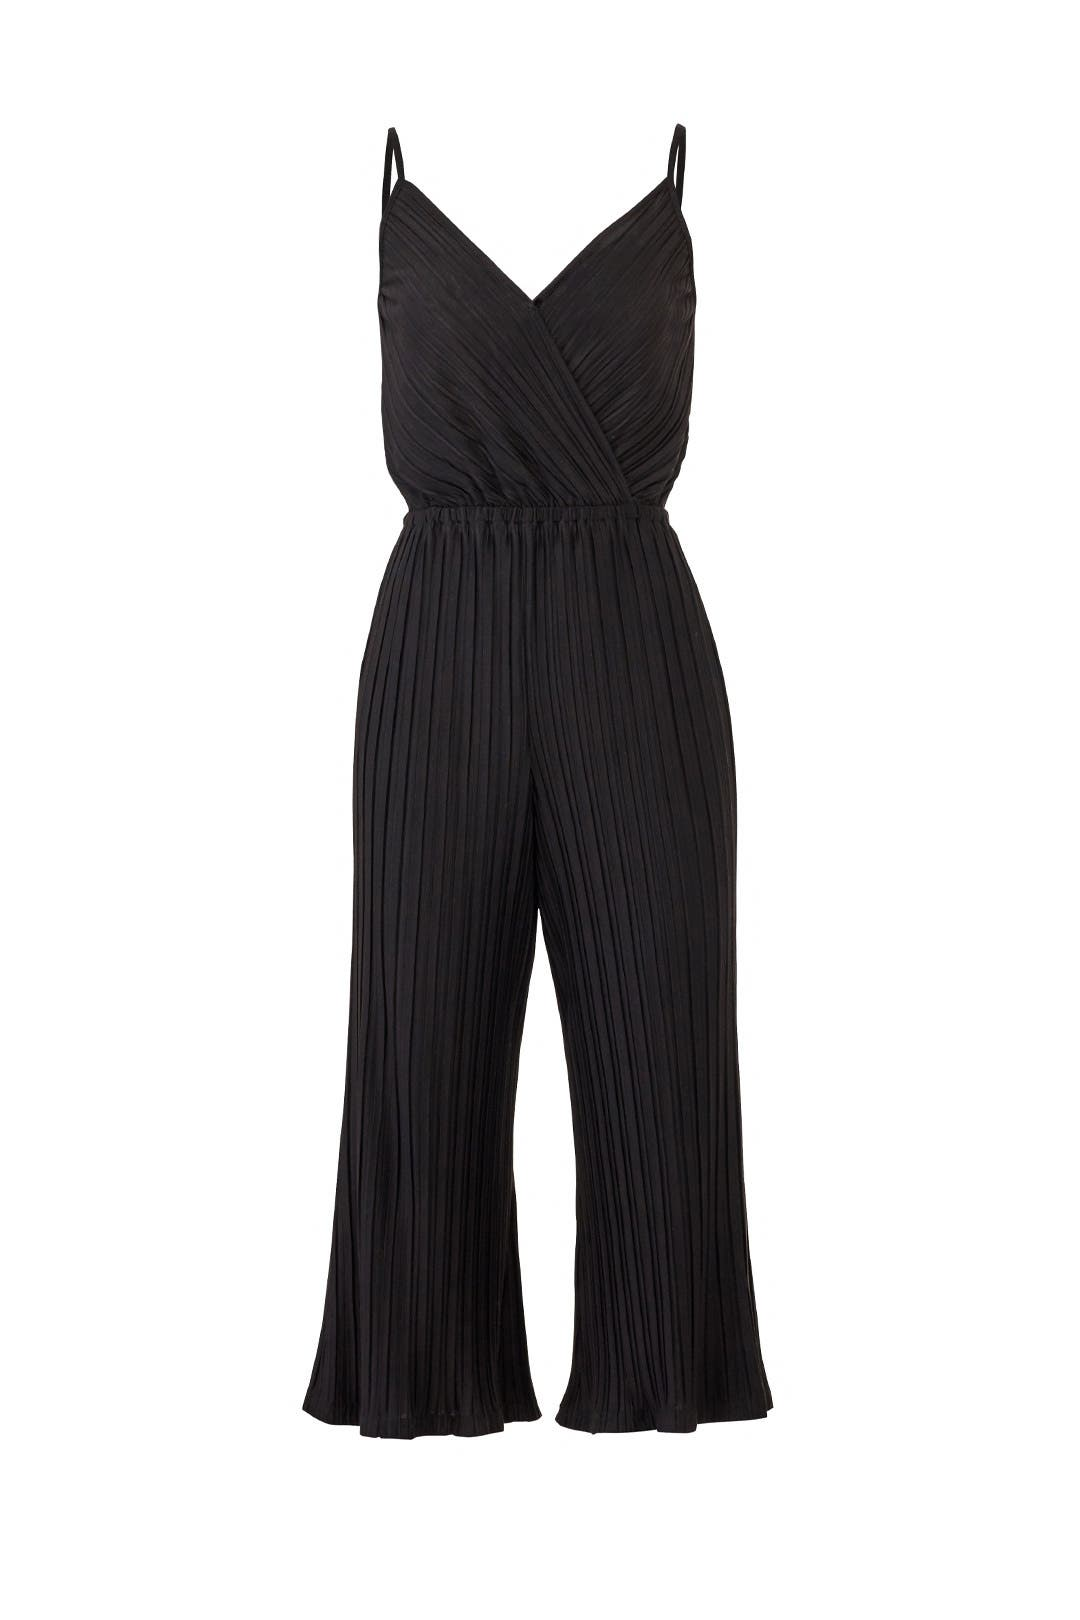 5a330adefaba cupcakes and cashmere. Read Reviews. Pleated Austine Jumpsuit